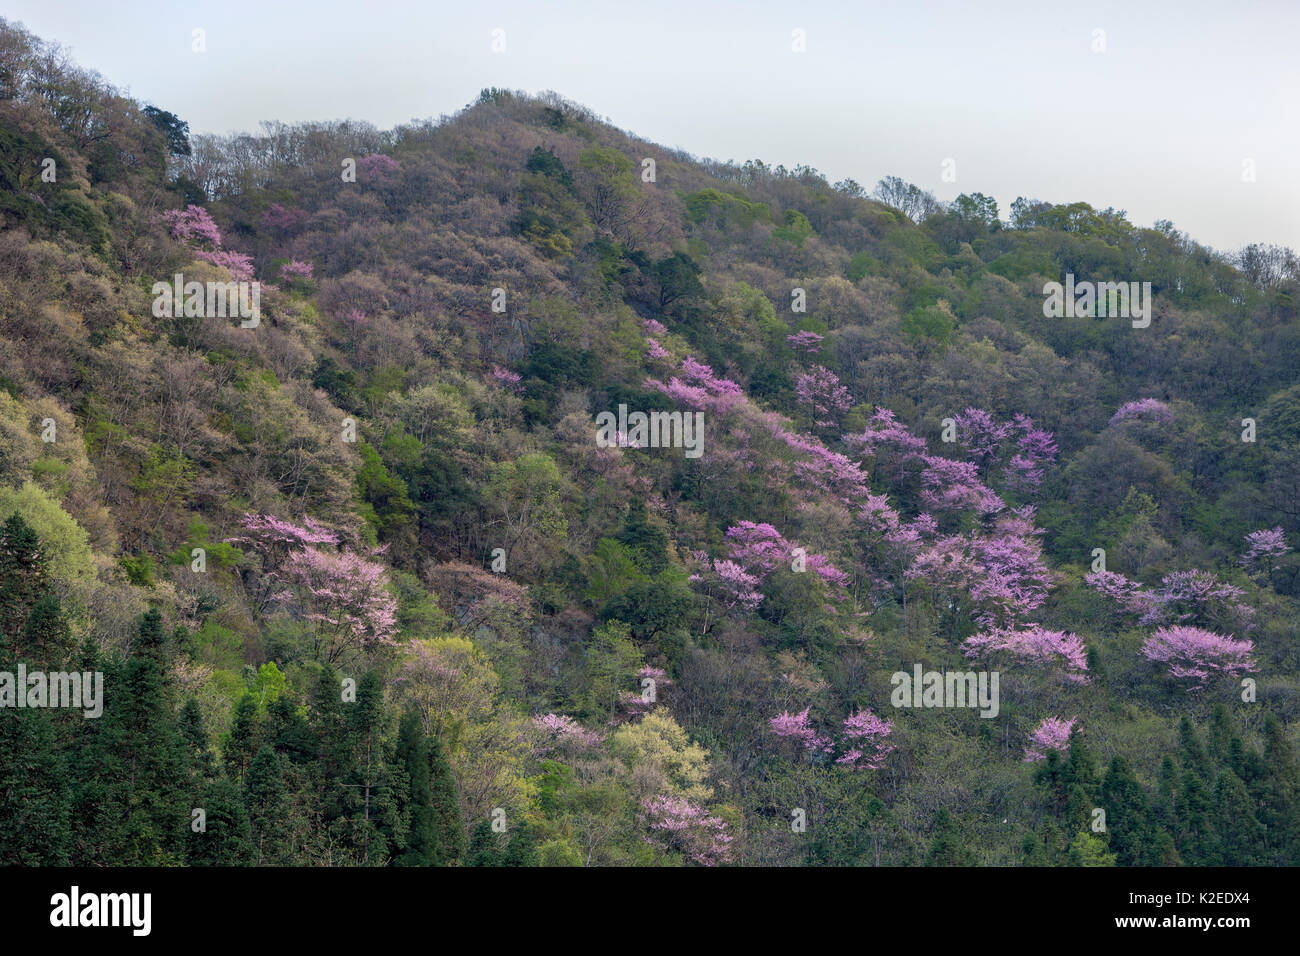 Mountainside forest with flowering cherry trees, Tangjiahe National Nature Reserve, Qingchuan County, Sichuan province, China. April 2015 - Stock Image